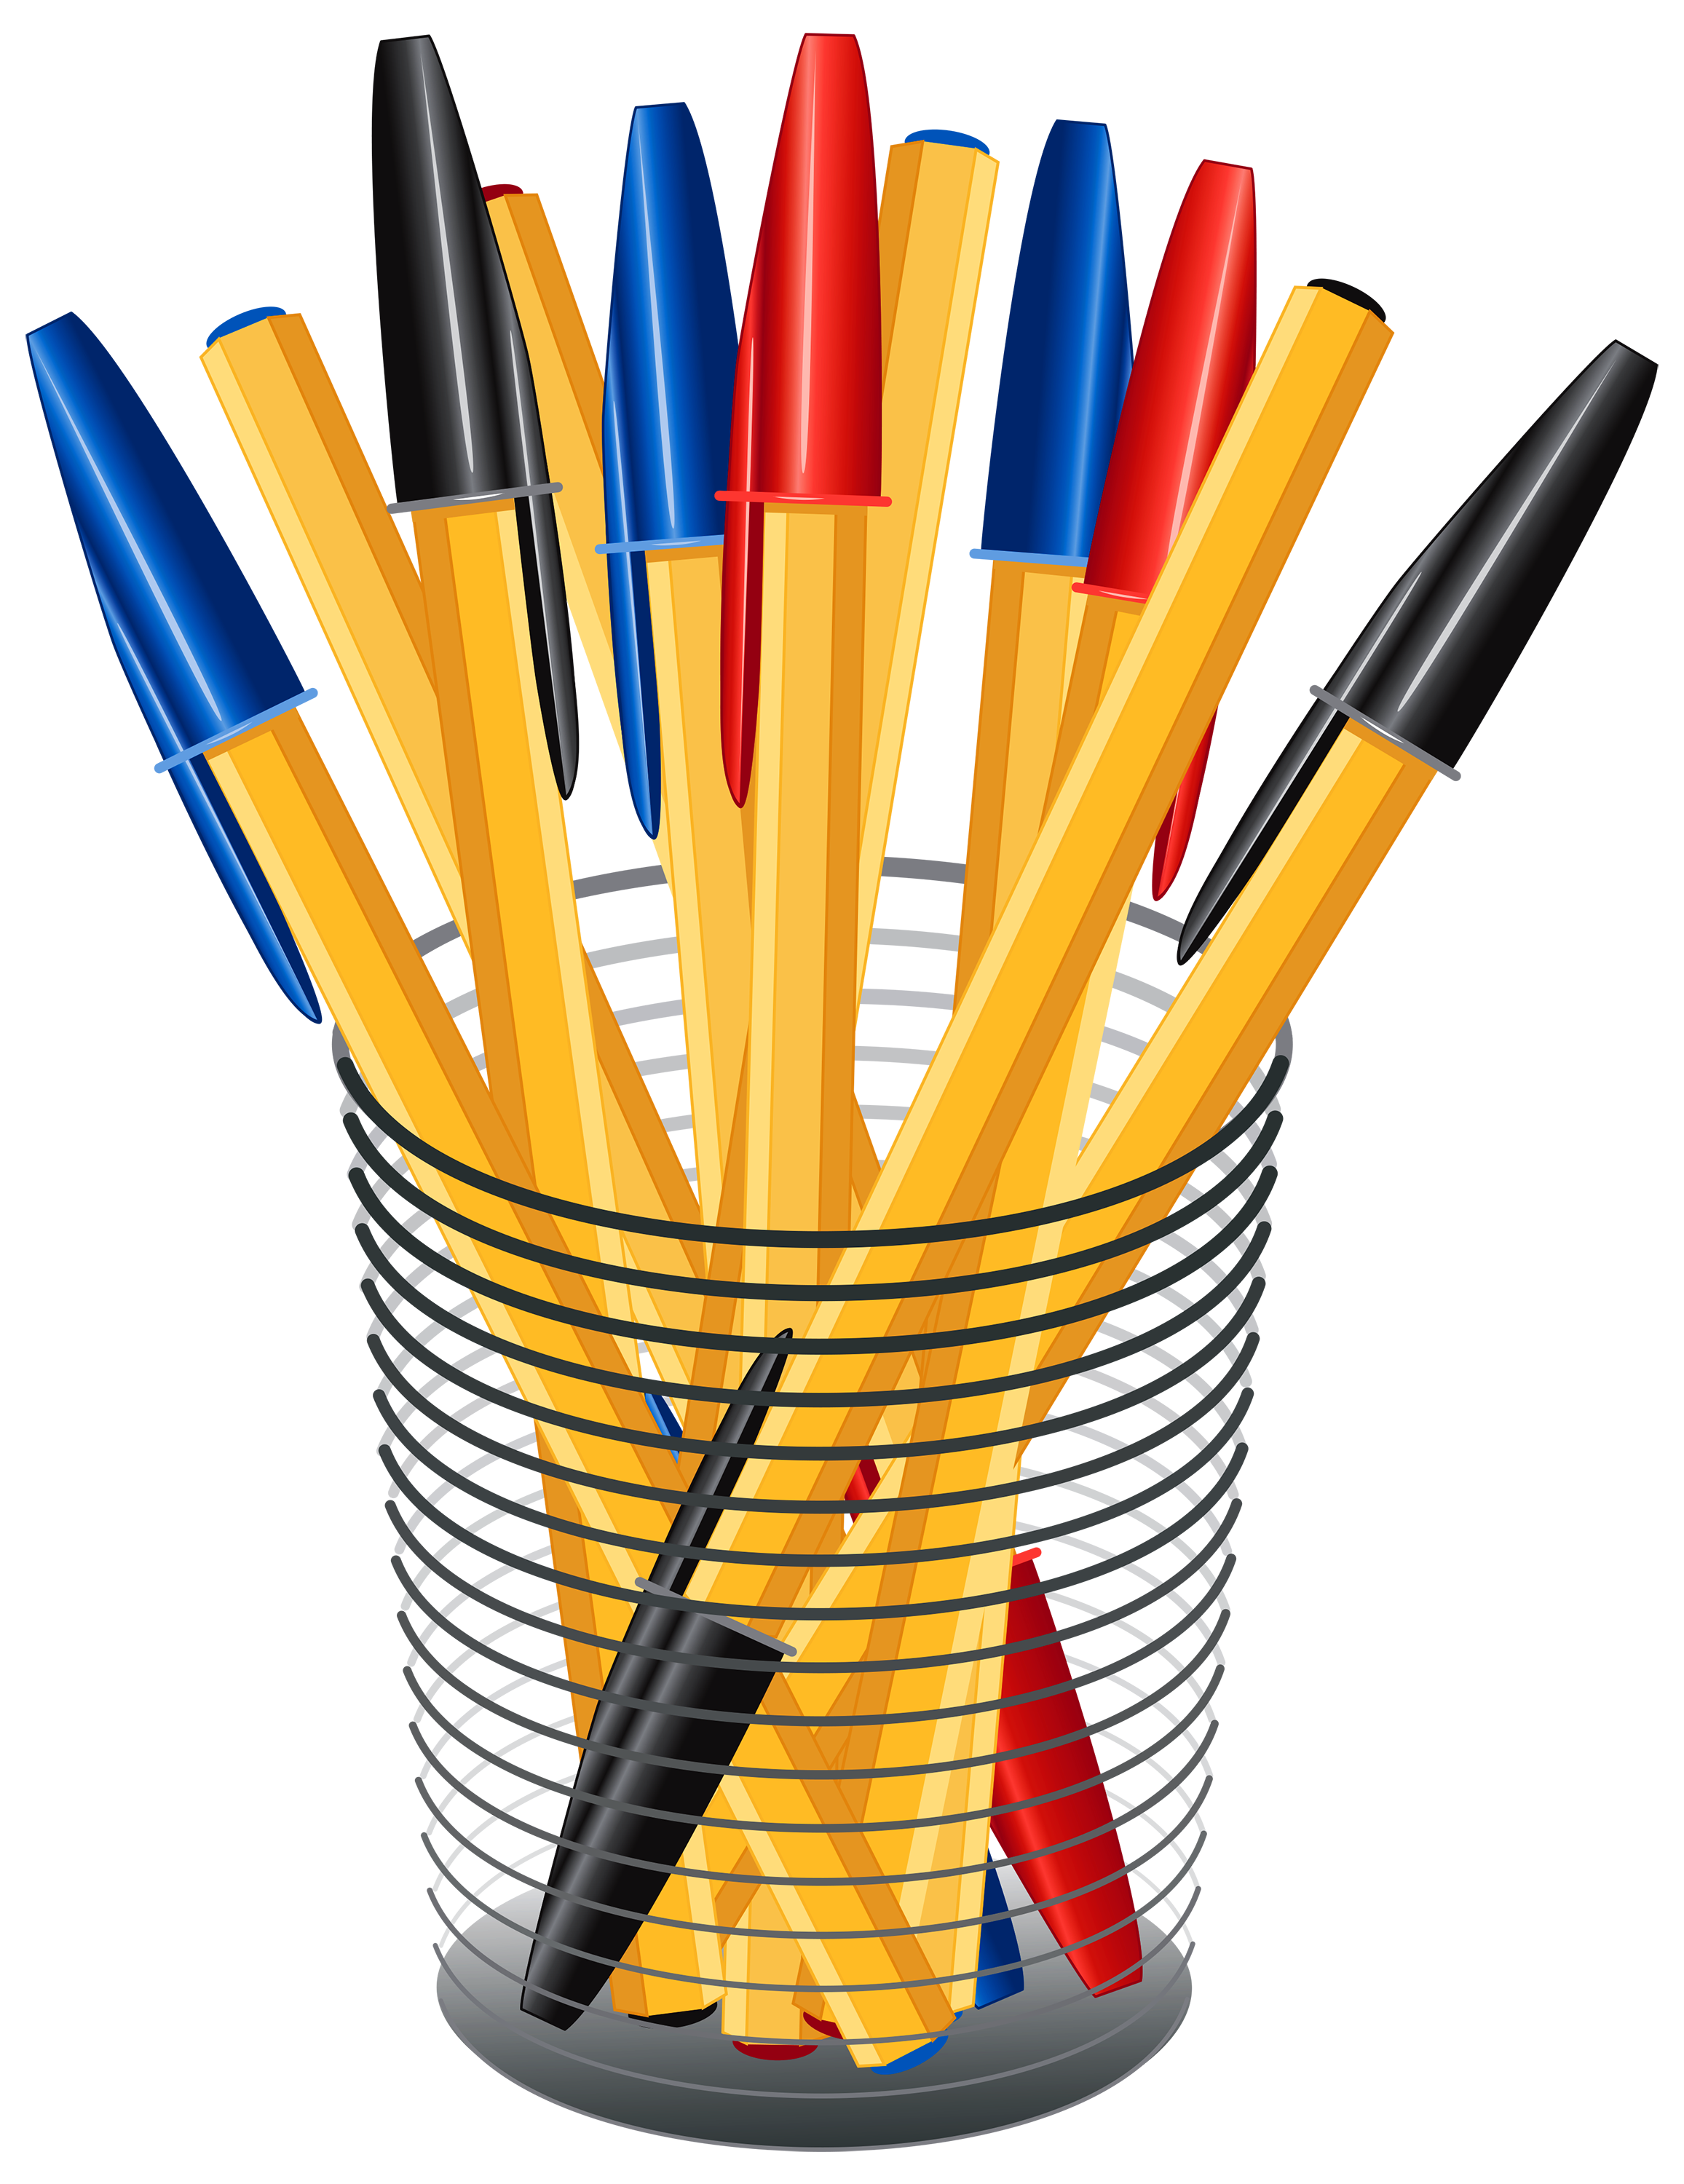 2313x3000 Metal Cup With Pens Png Clip Art